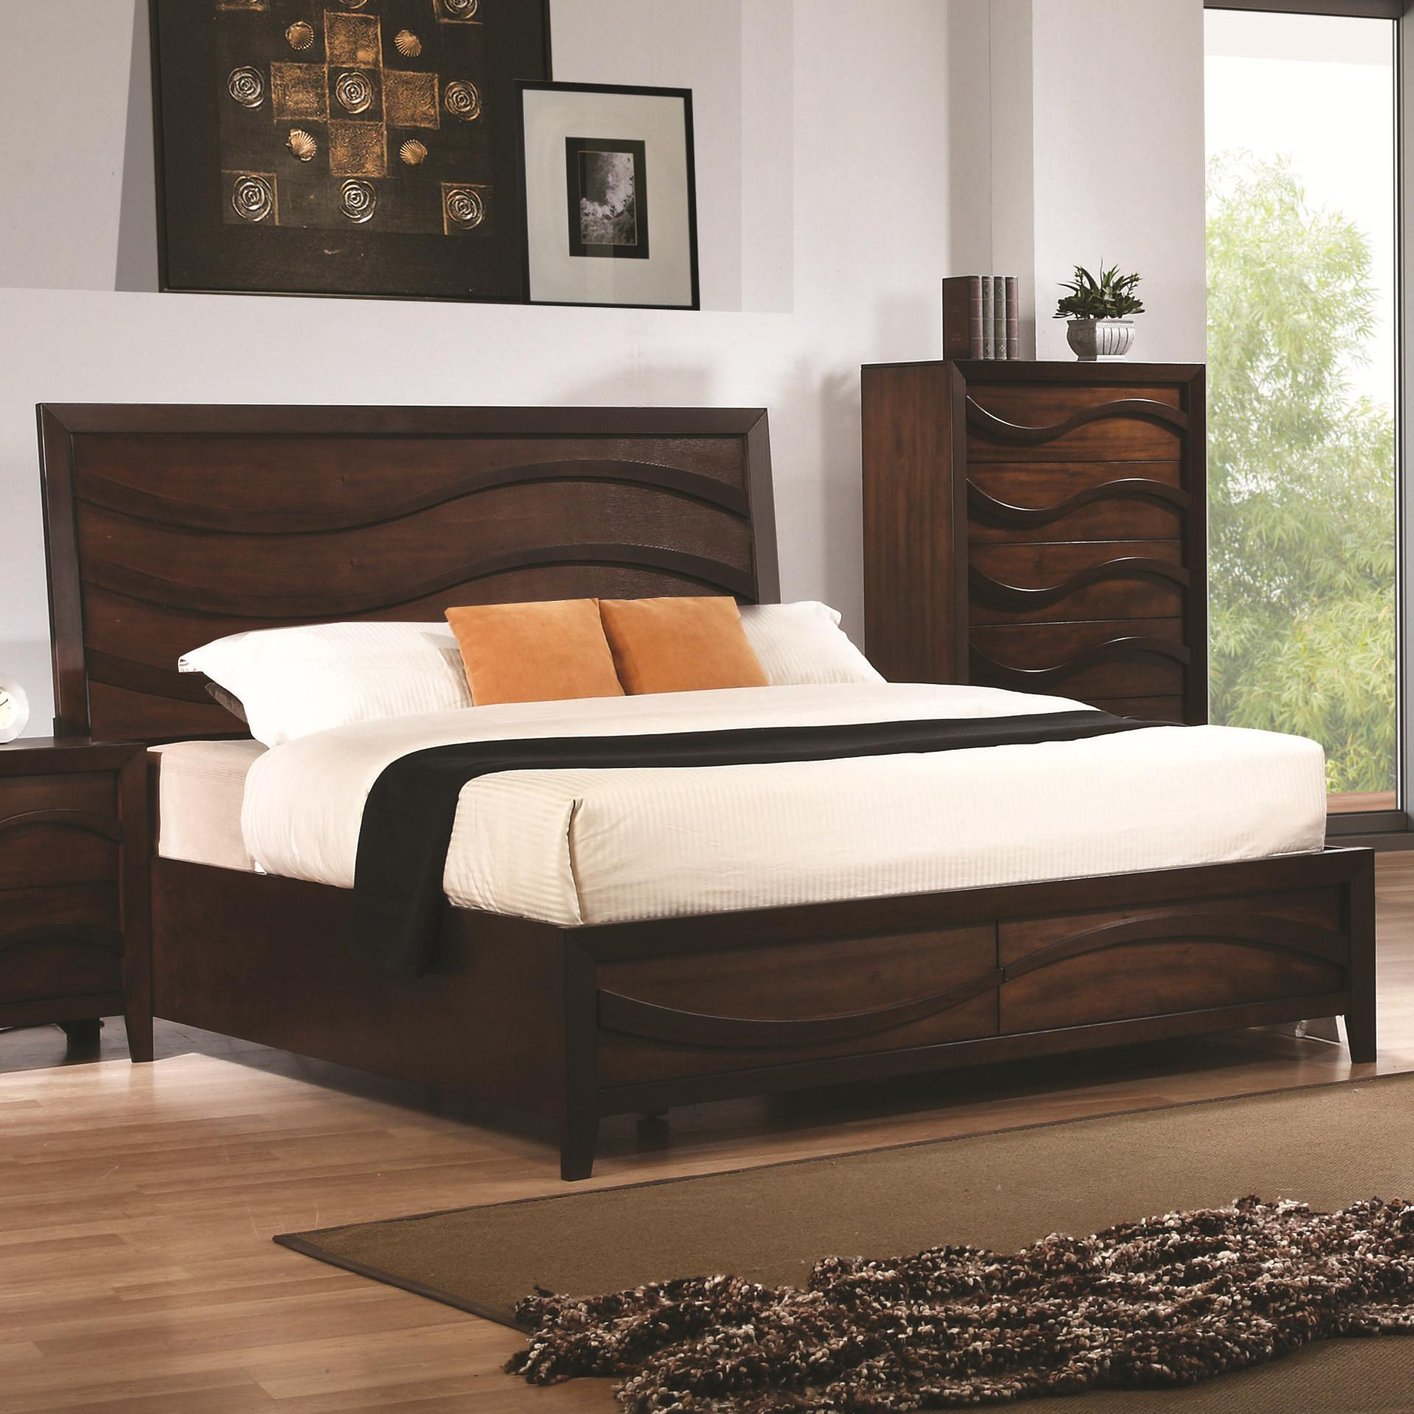 Coaster Kw Brown California King Size Wood Bed